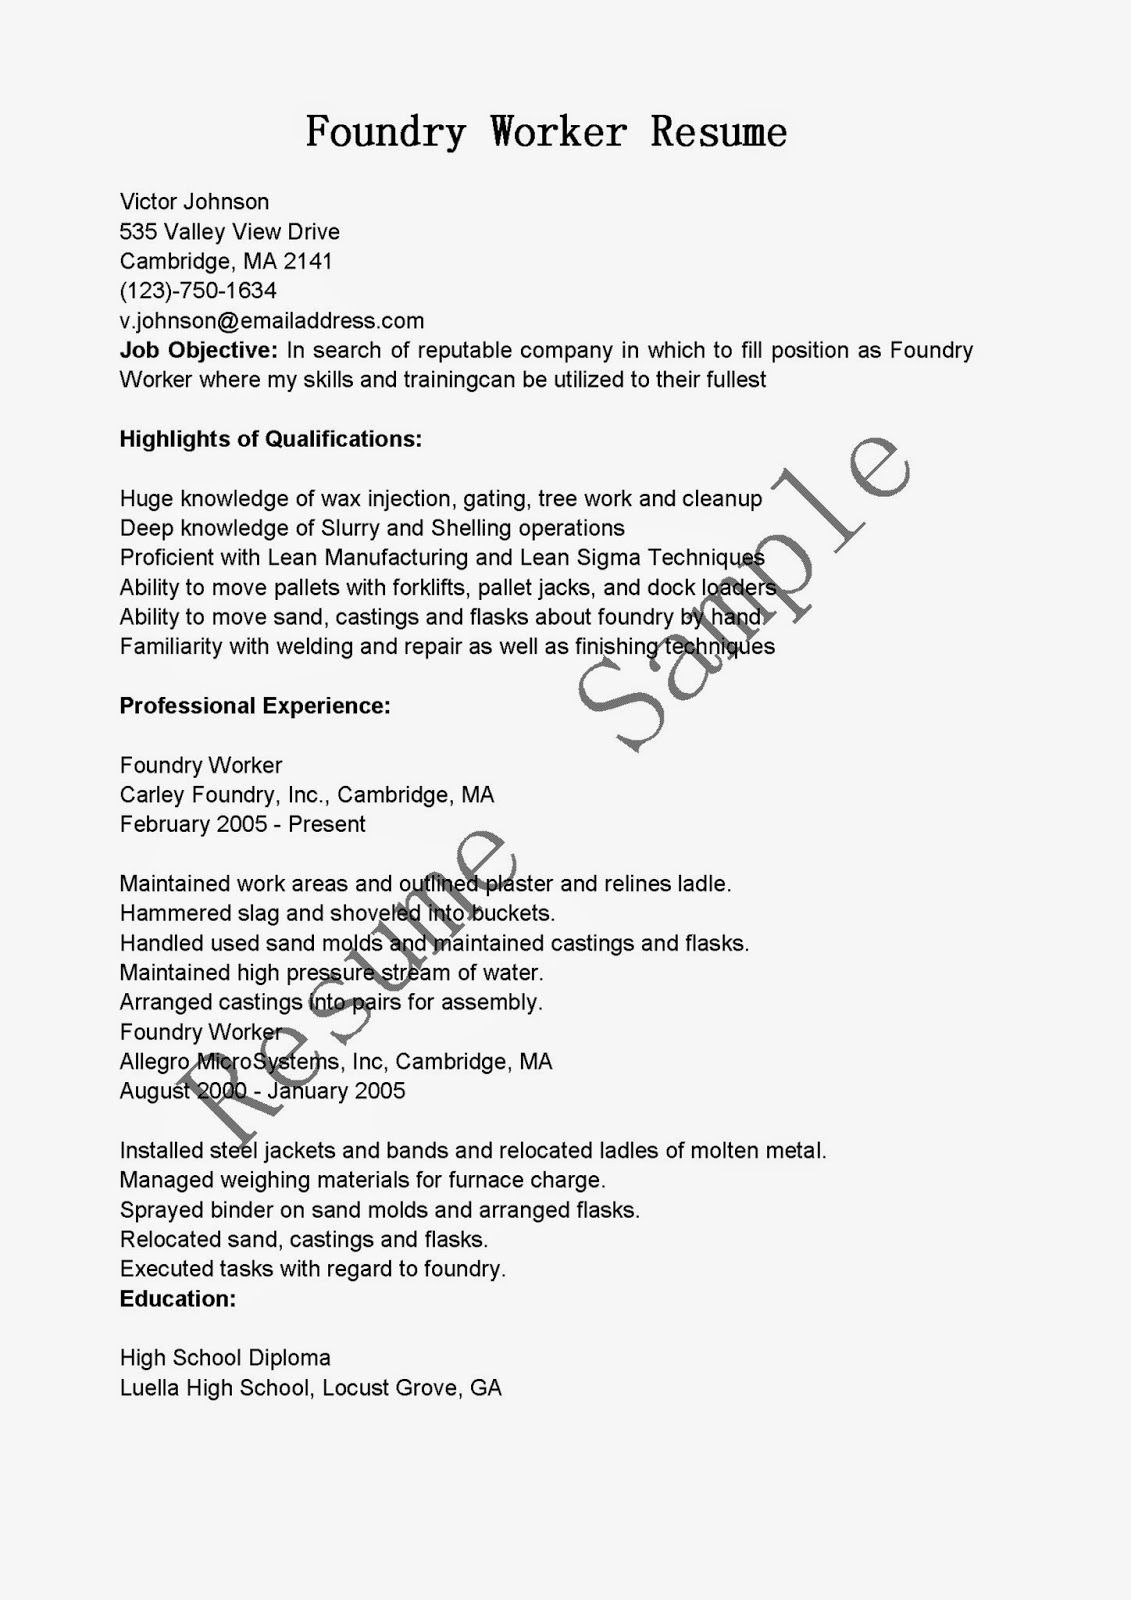 download sample resume factory worker haadyaooverbayresortcom